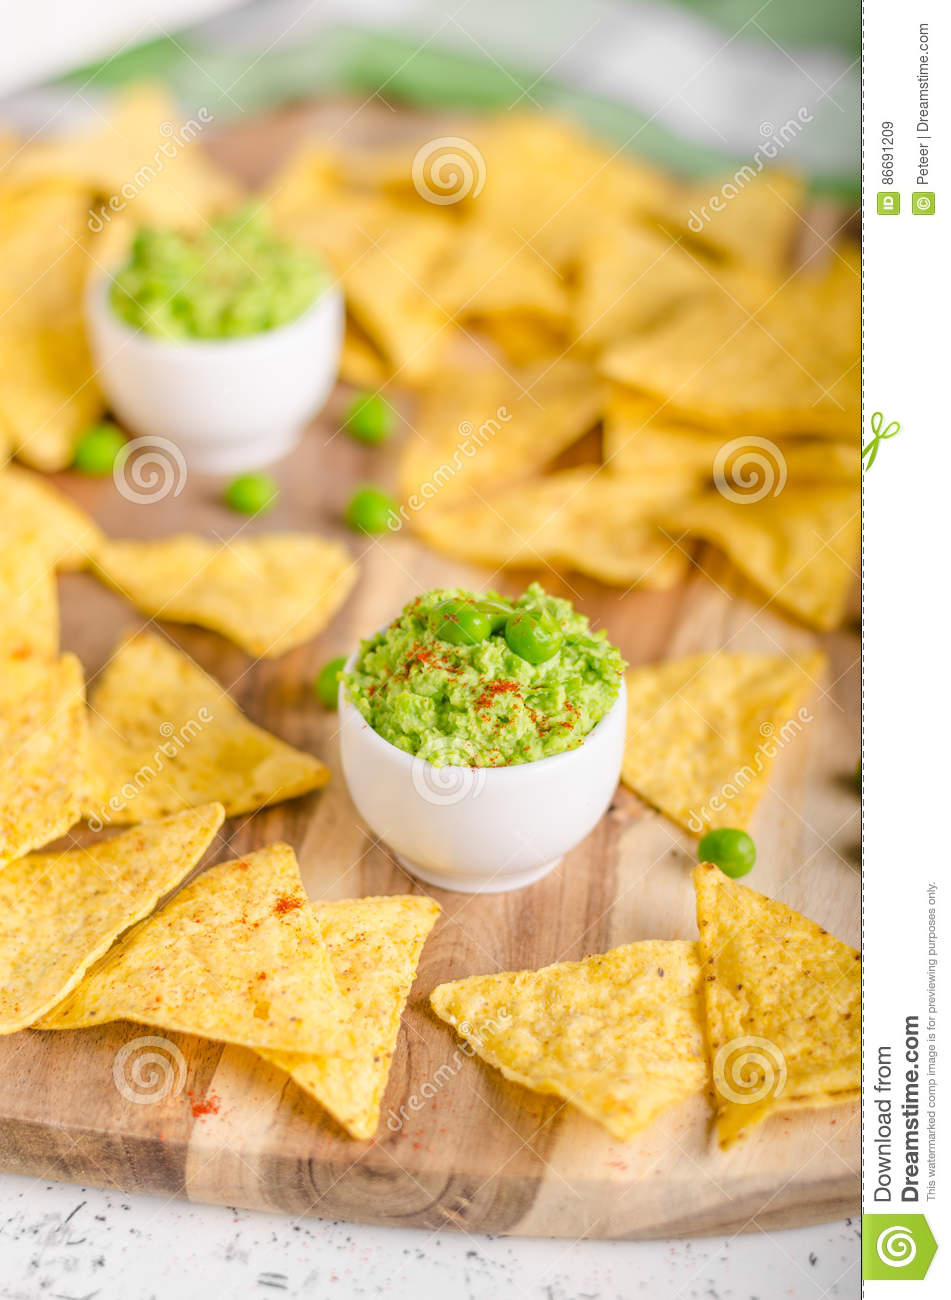 Tortilla chips peas dip stock image. Image of lime ...